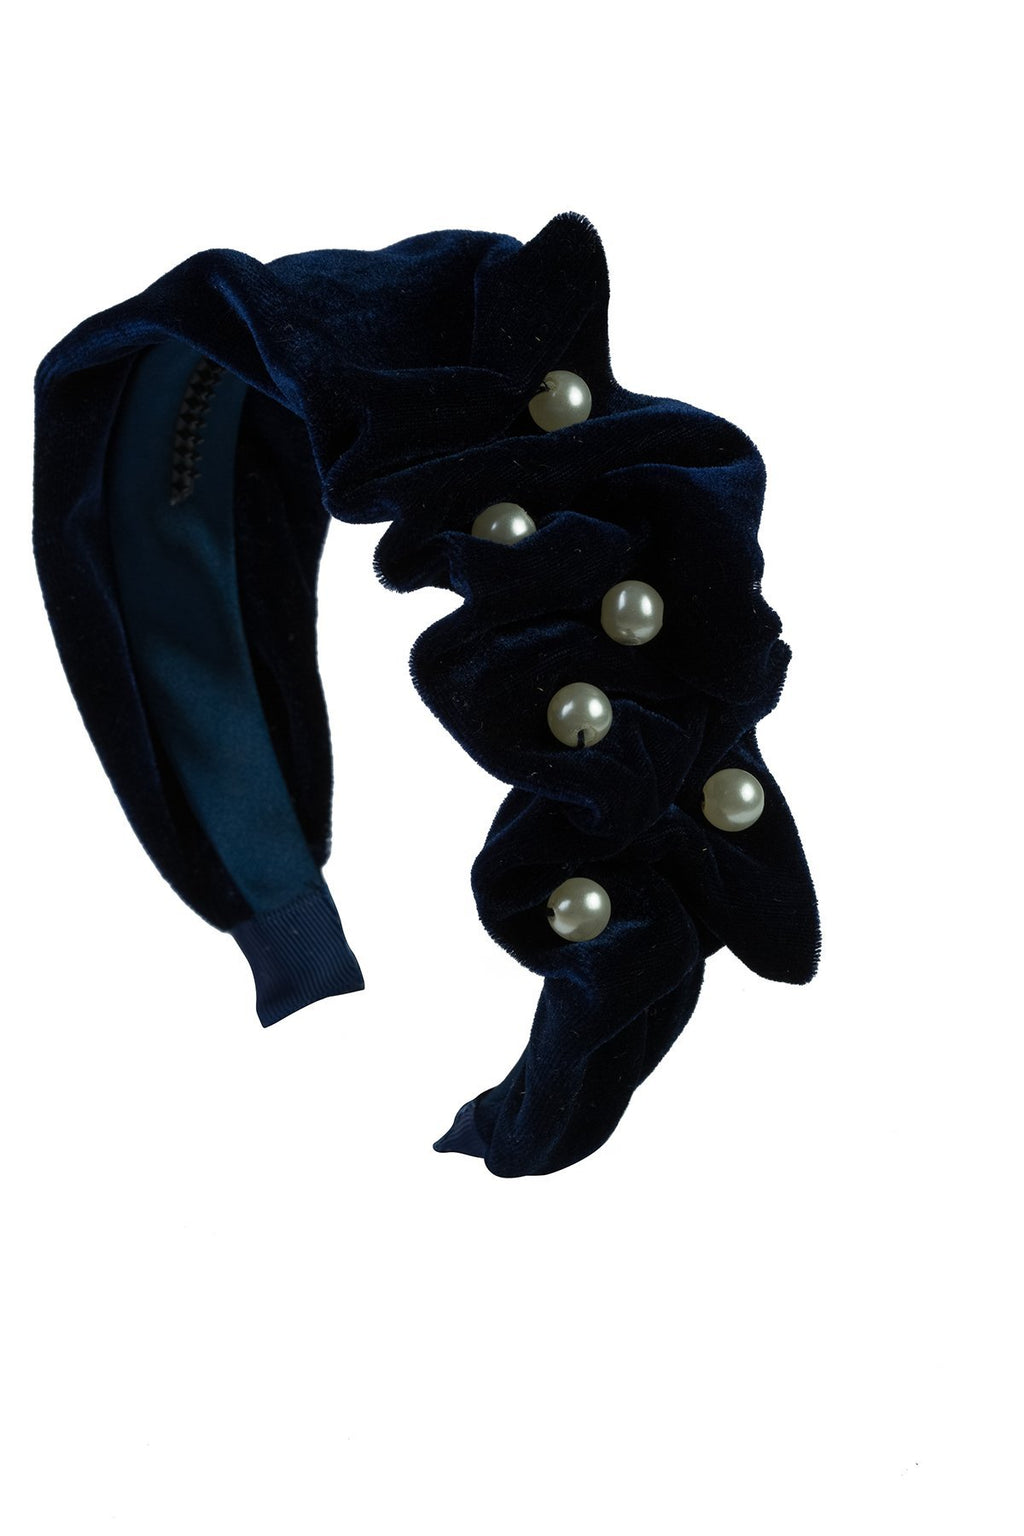 Ruffled Pearl Velvet Headband - Navy - PROJECT 6, modest fashion